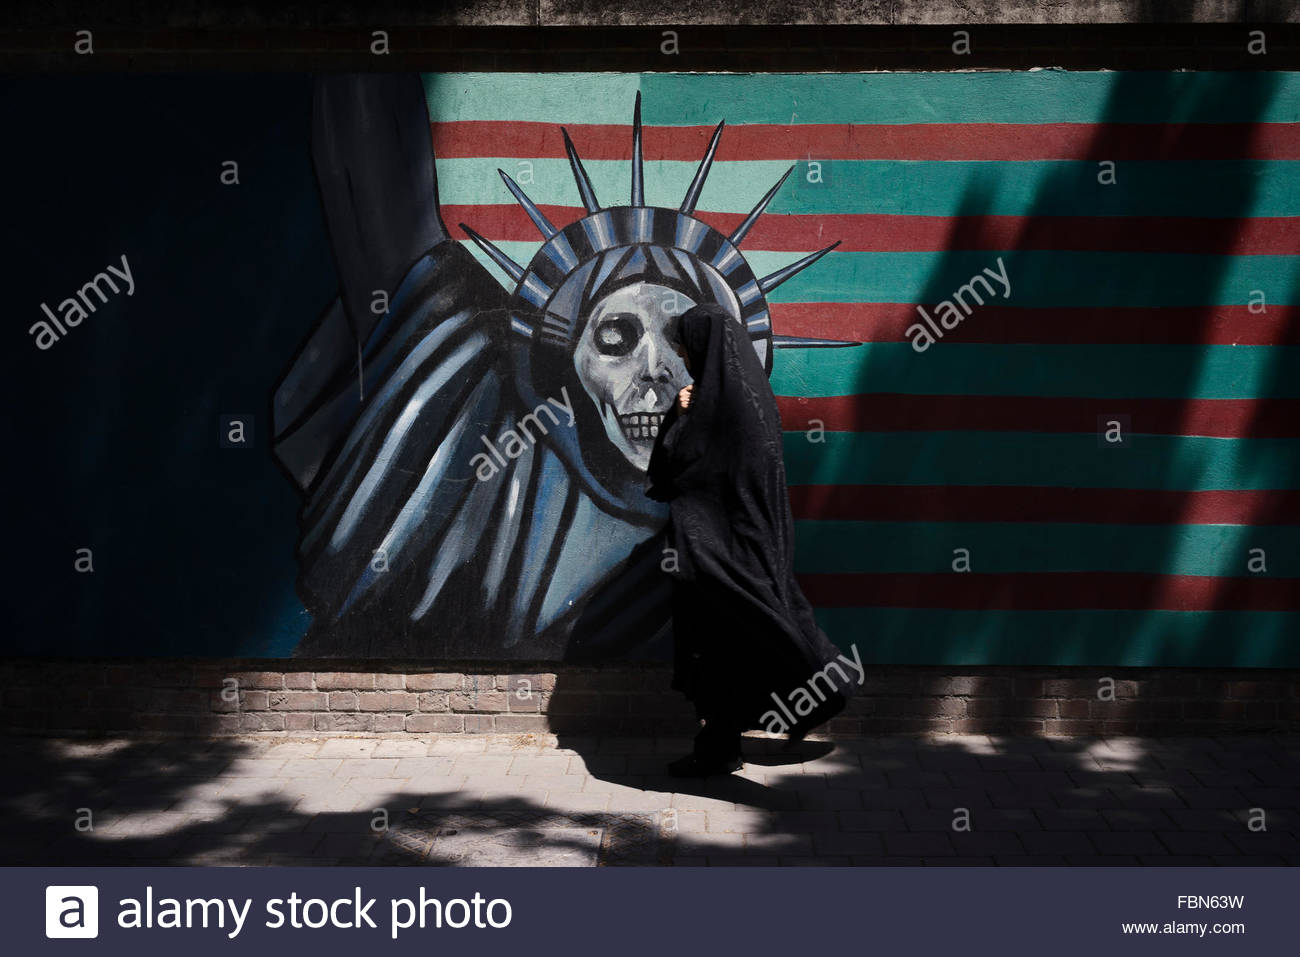 Anti-American mural on the wall of the former American Embassy 'Den of Espionage' - Stock Image